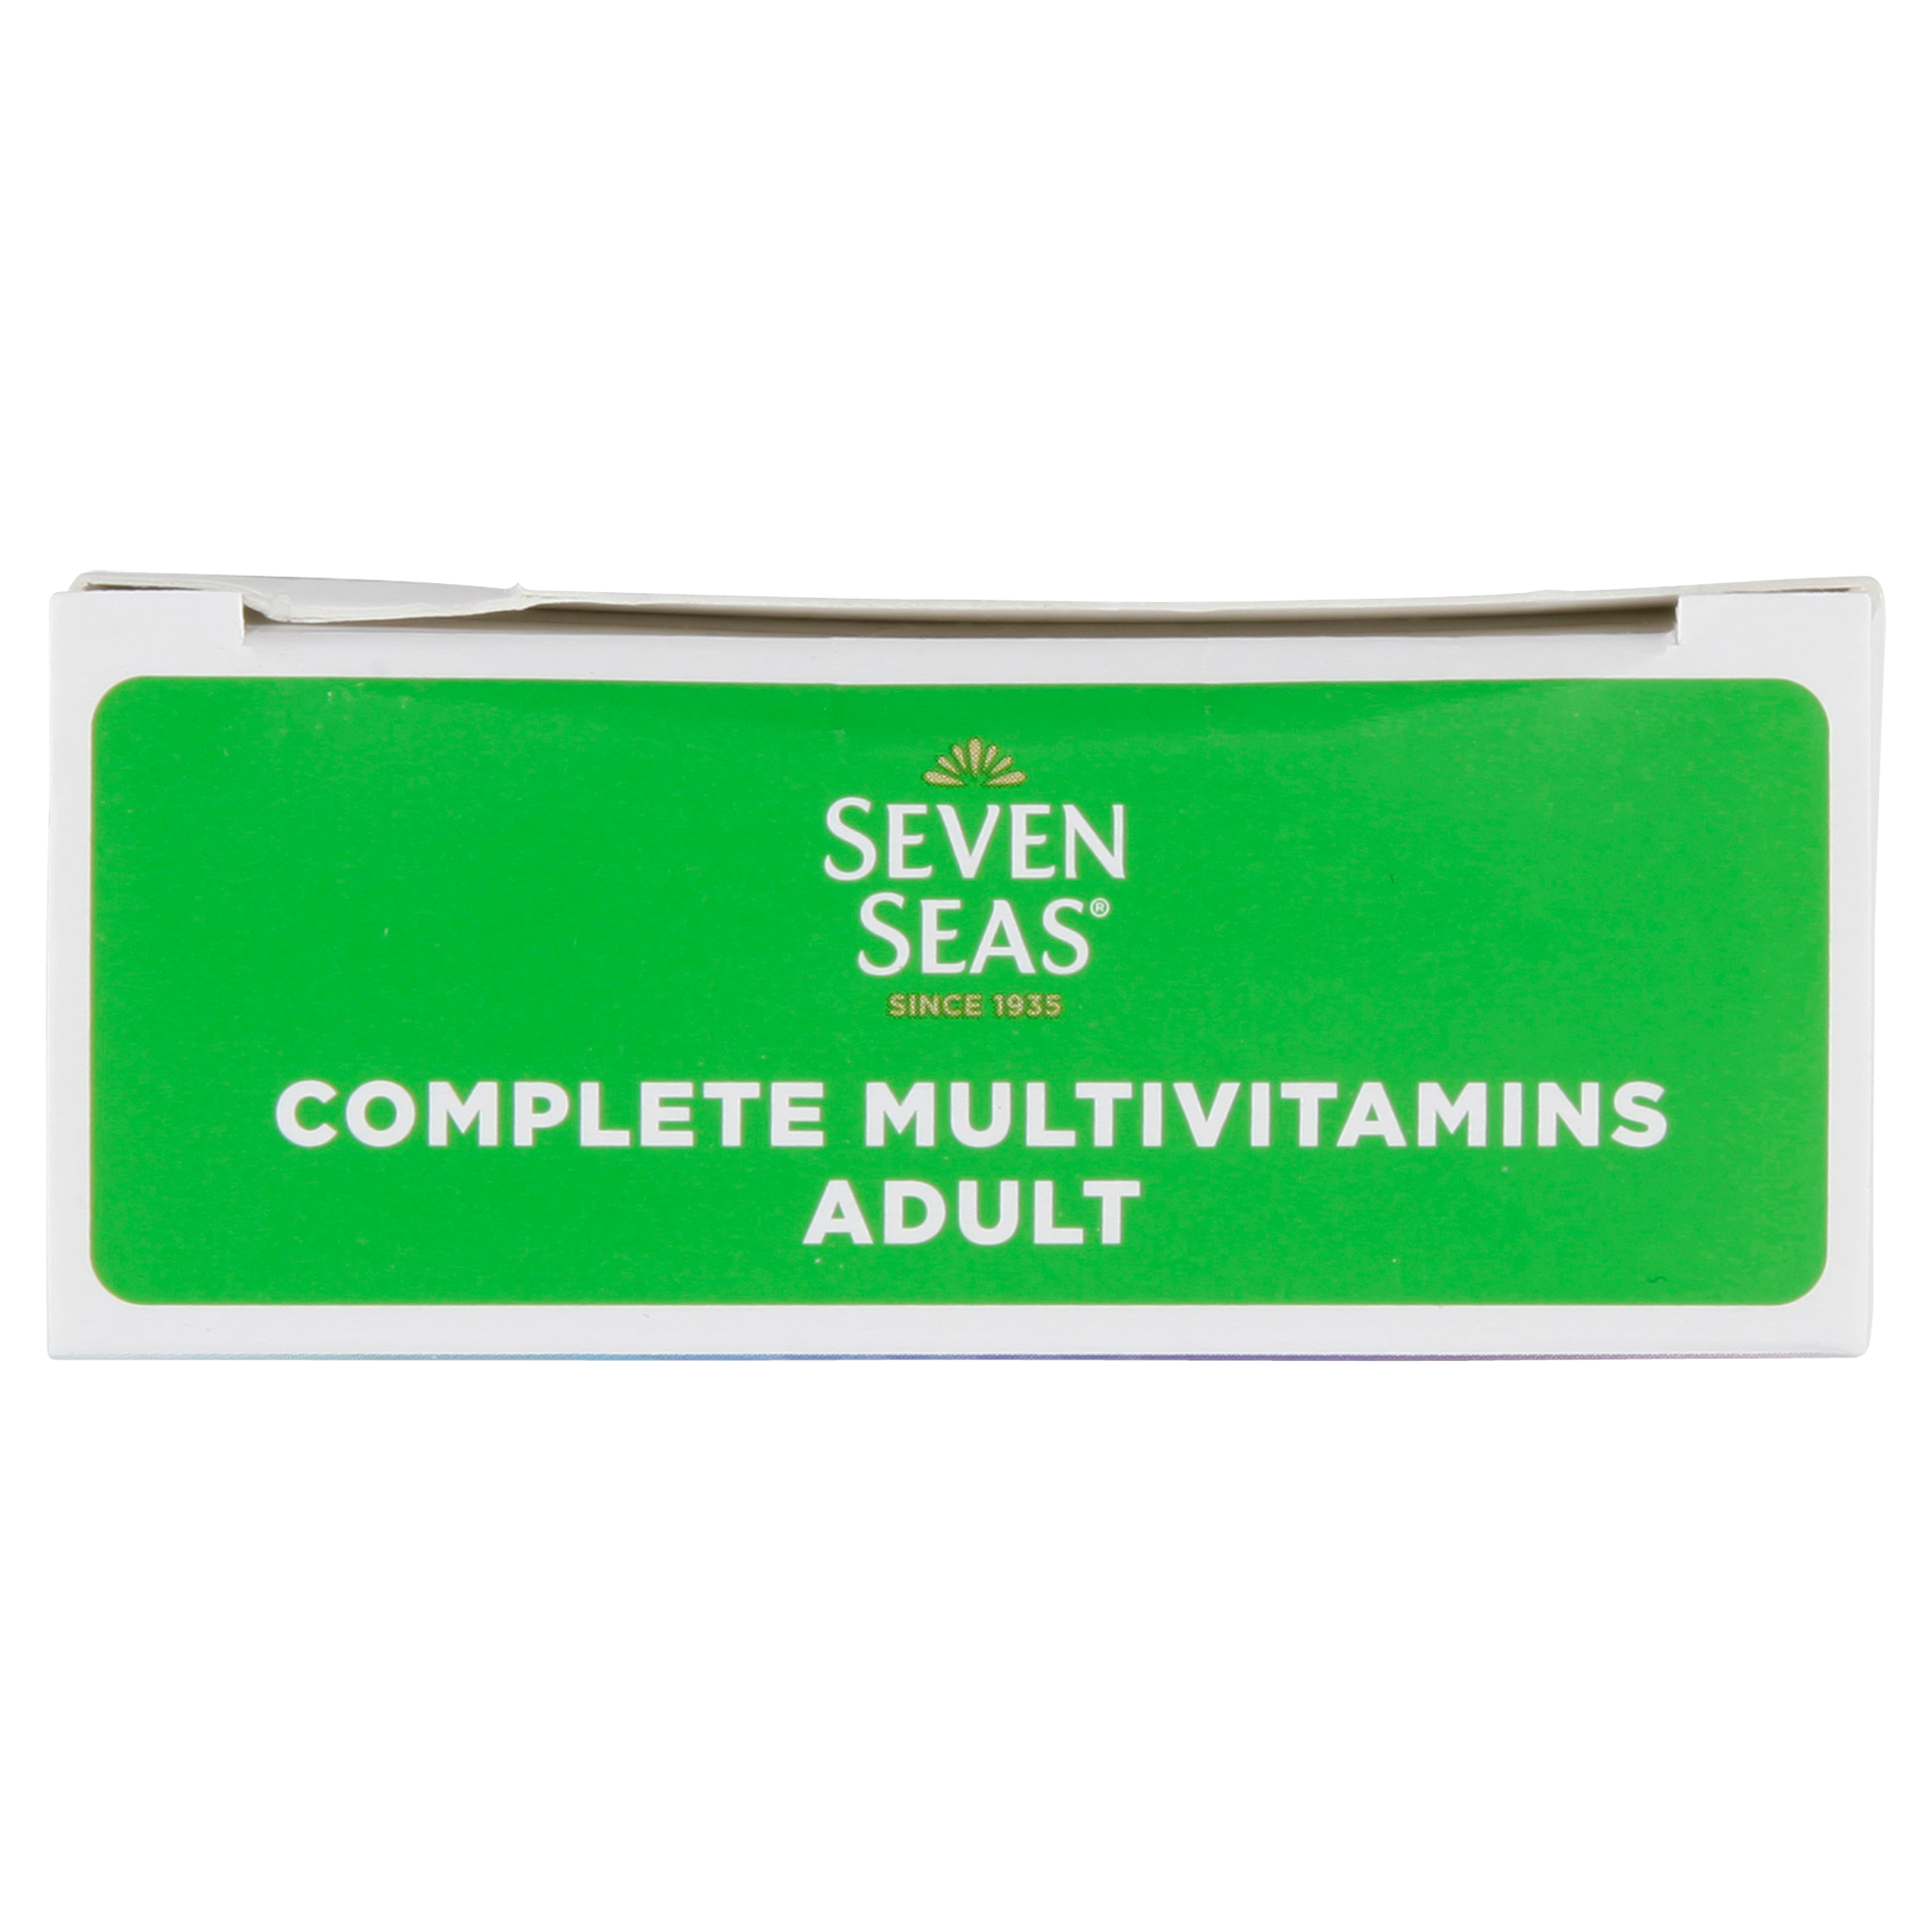 Seven Seas Complete Multivitamins Adult